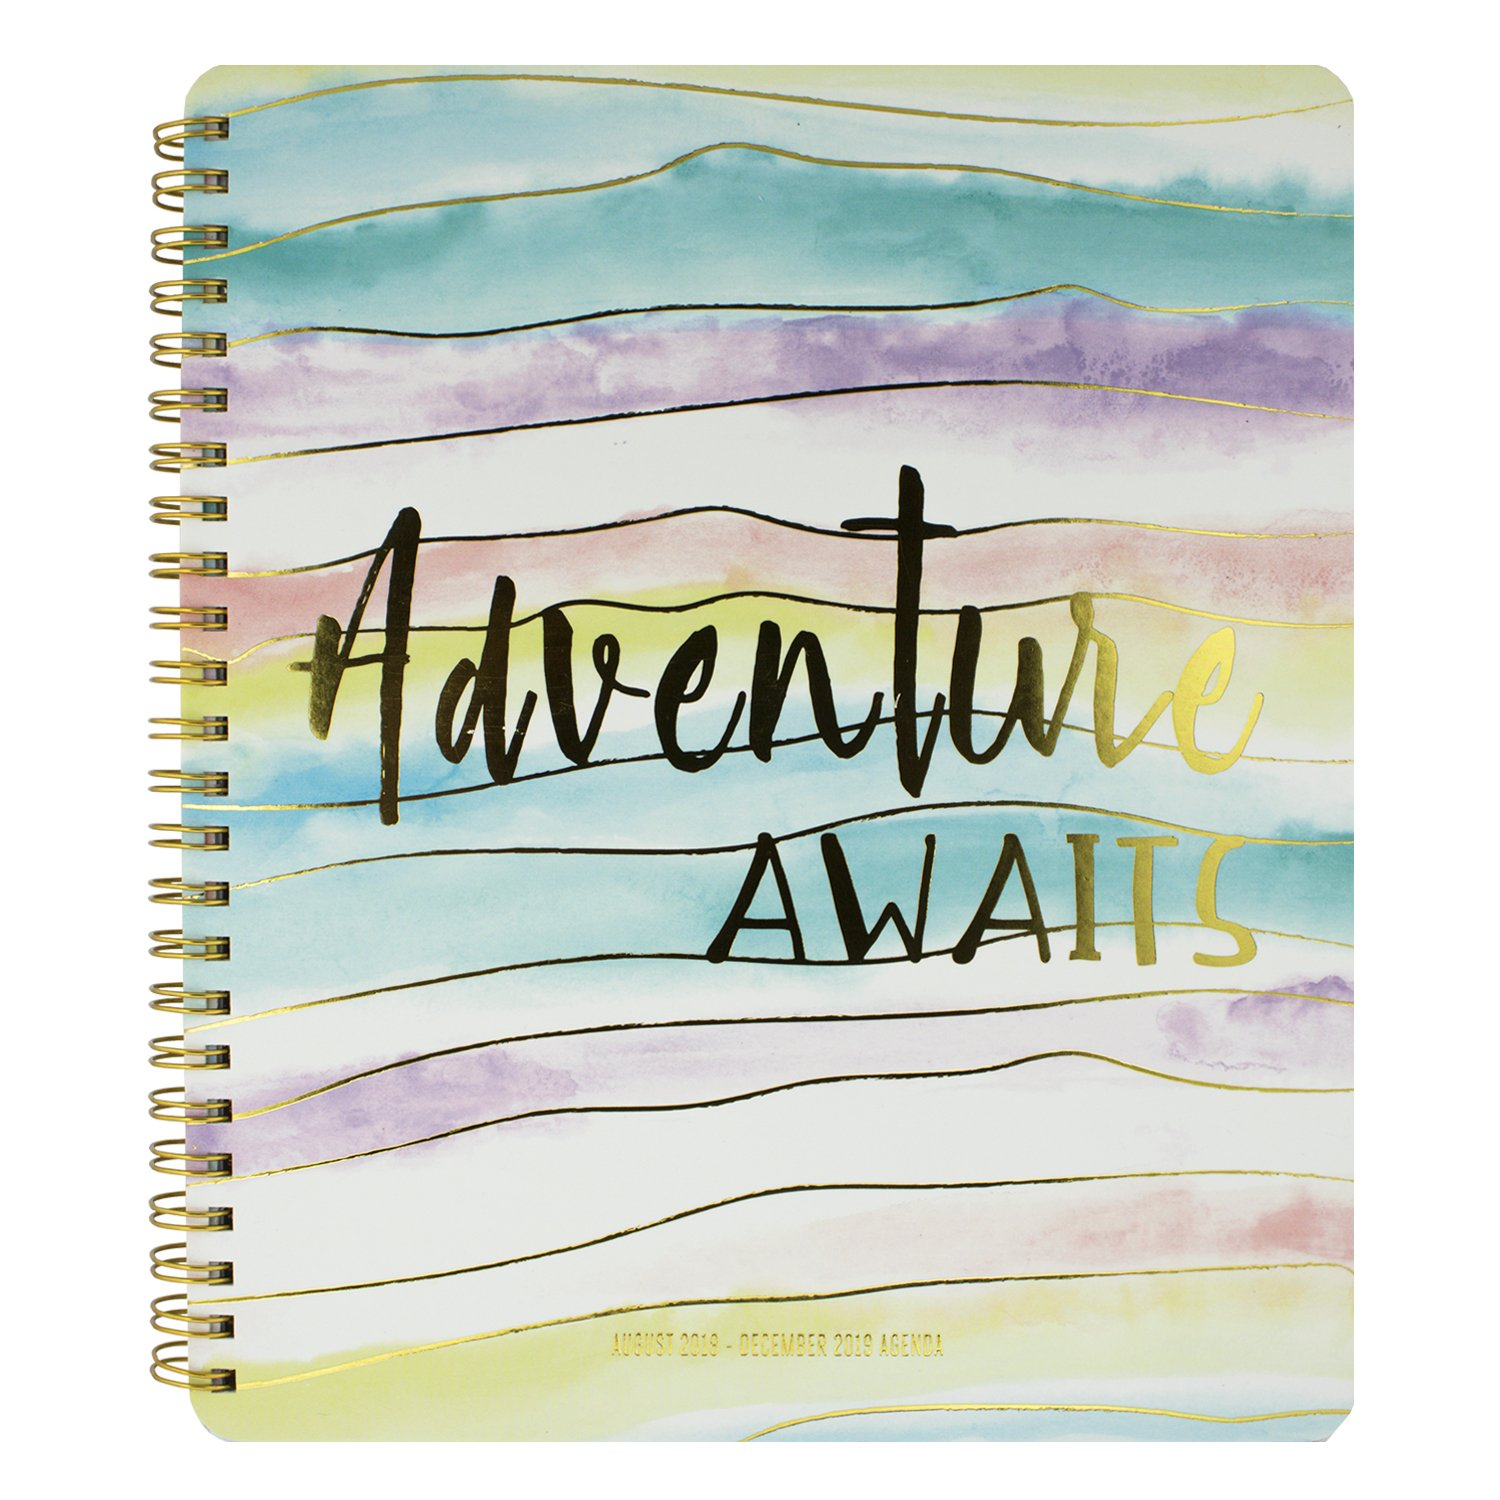 Amazon.com : Capri Designs 2018-2019 Agenda - Adventure ...